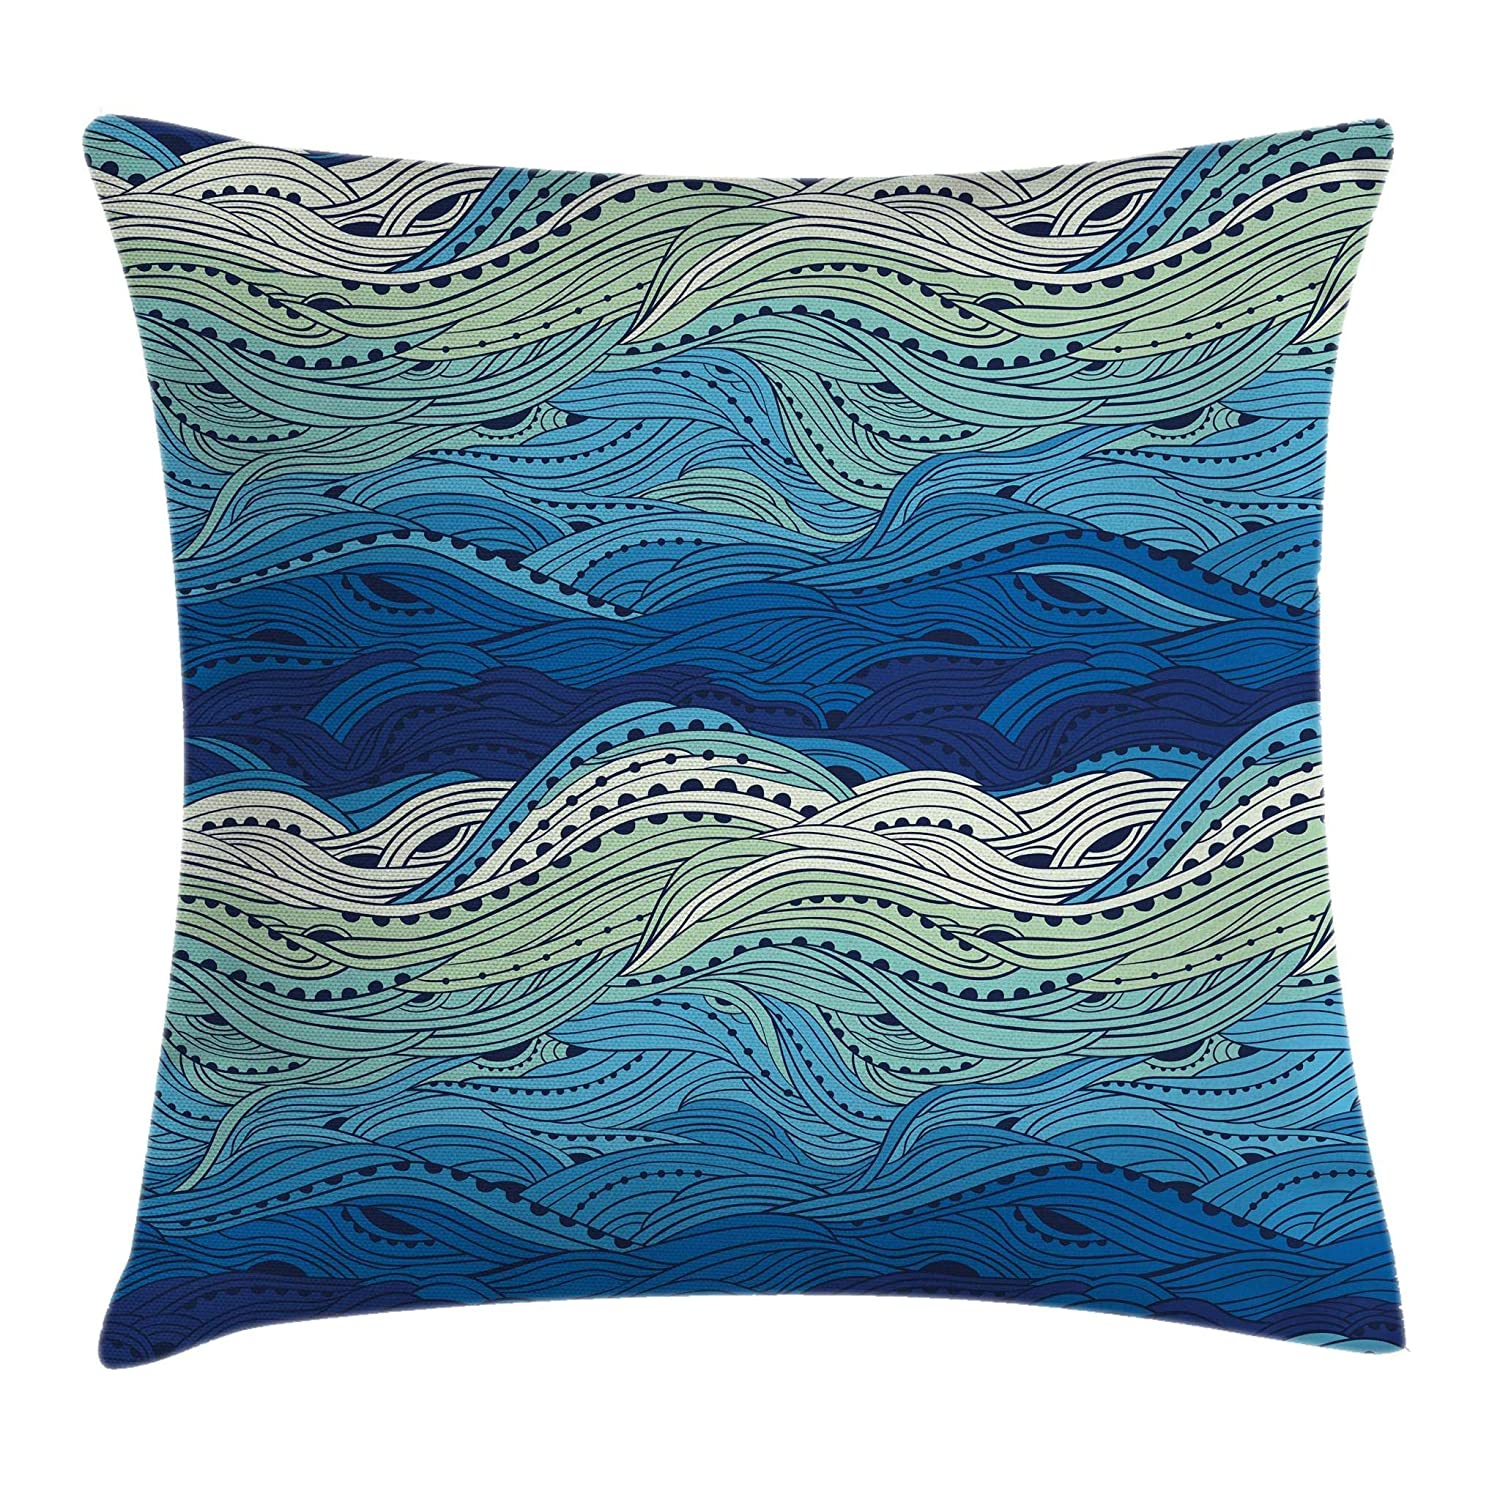 Decorative Square Accent Pillow Case Blue Light Blue Mint Green Conceptual Ocean Themed Artwork Hand Drawn Waves Seascape Maritime Ambesonne Aquatic Throw Pillow Cushion Cover by 24 X 24 Inches